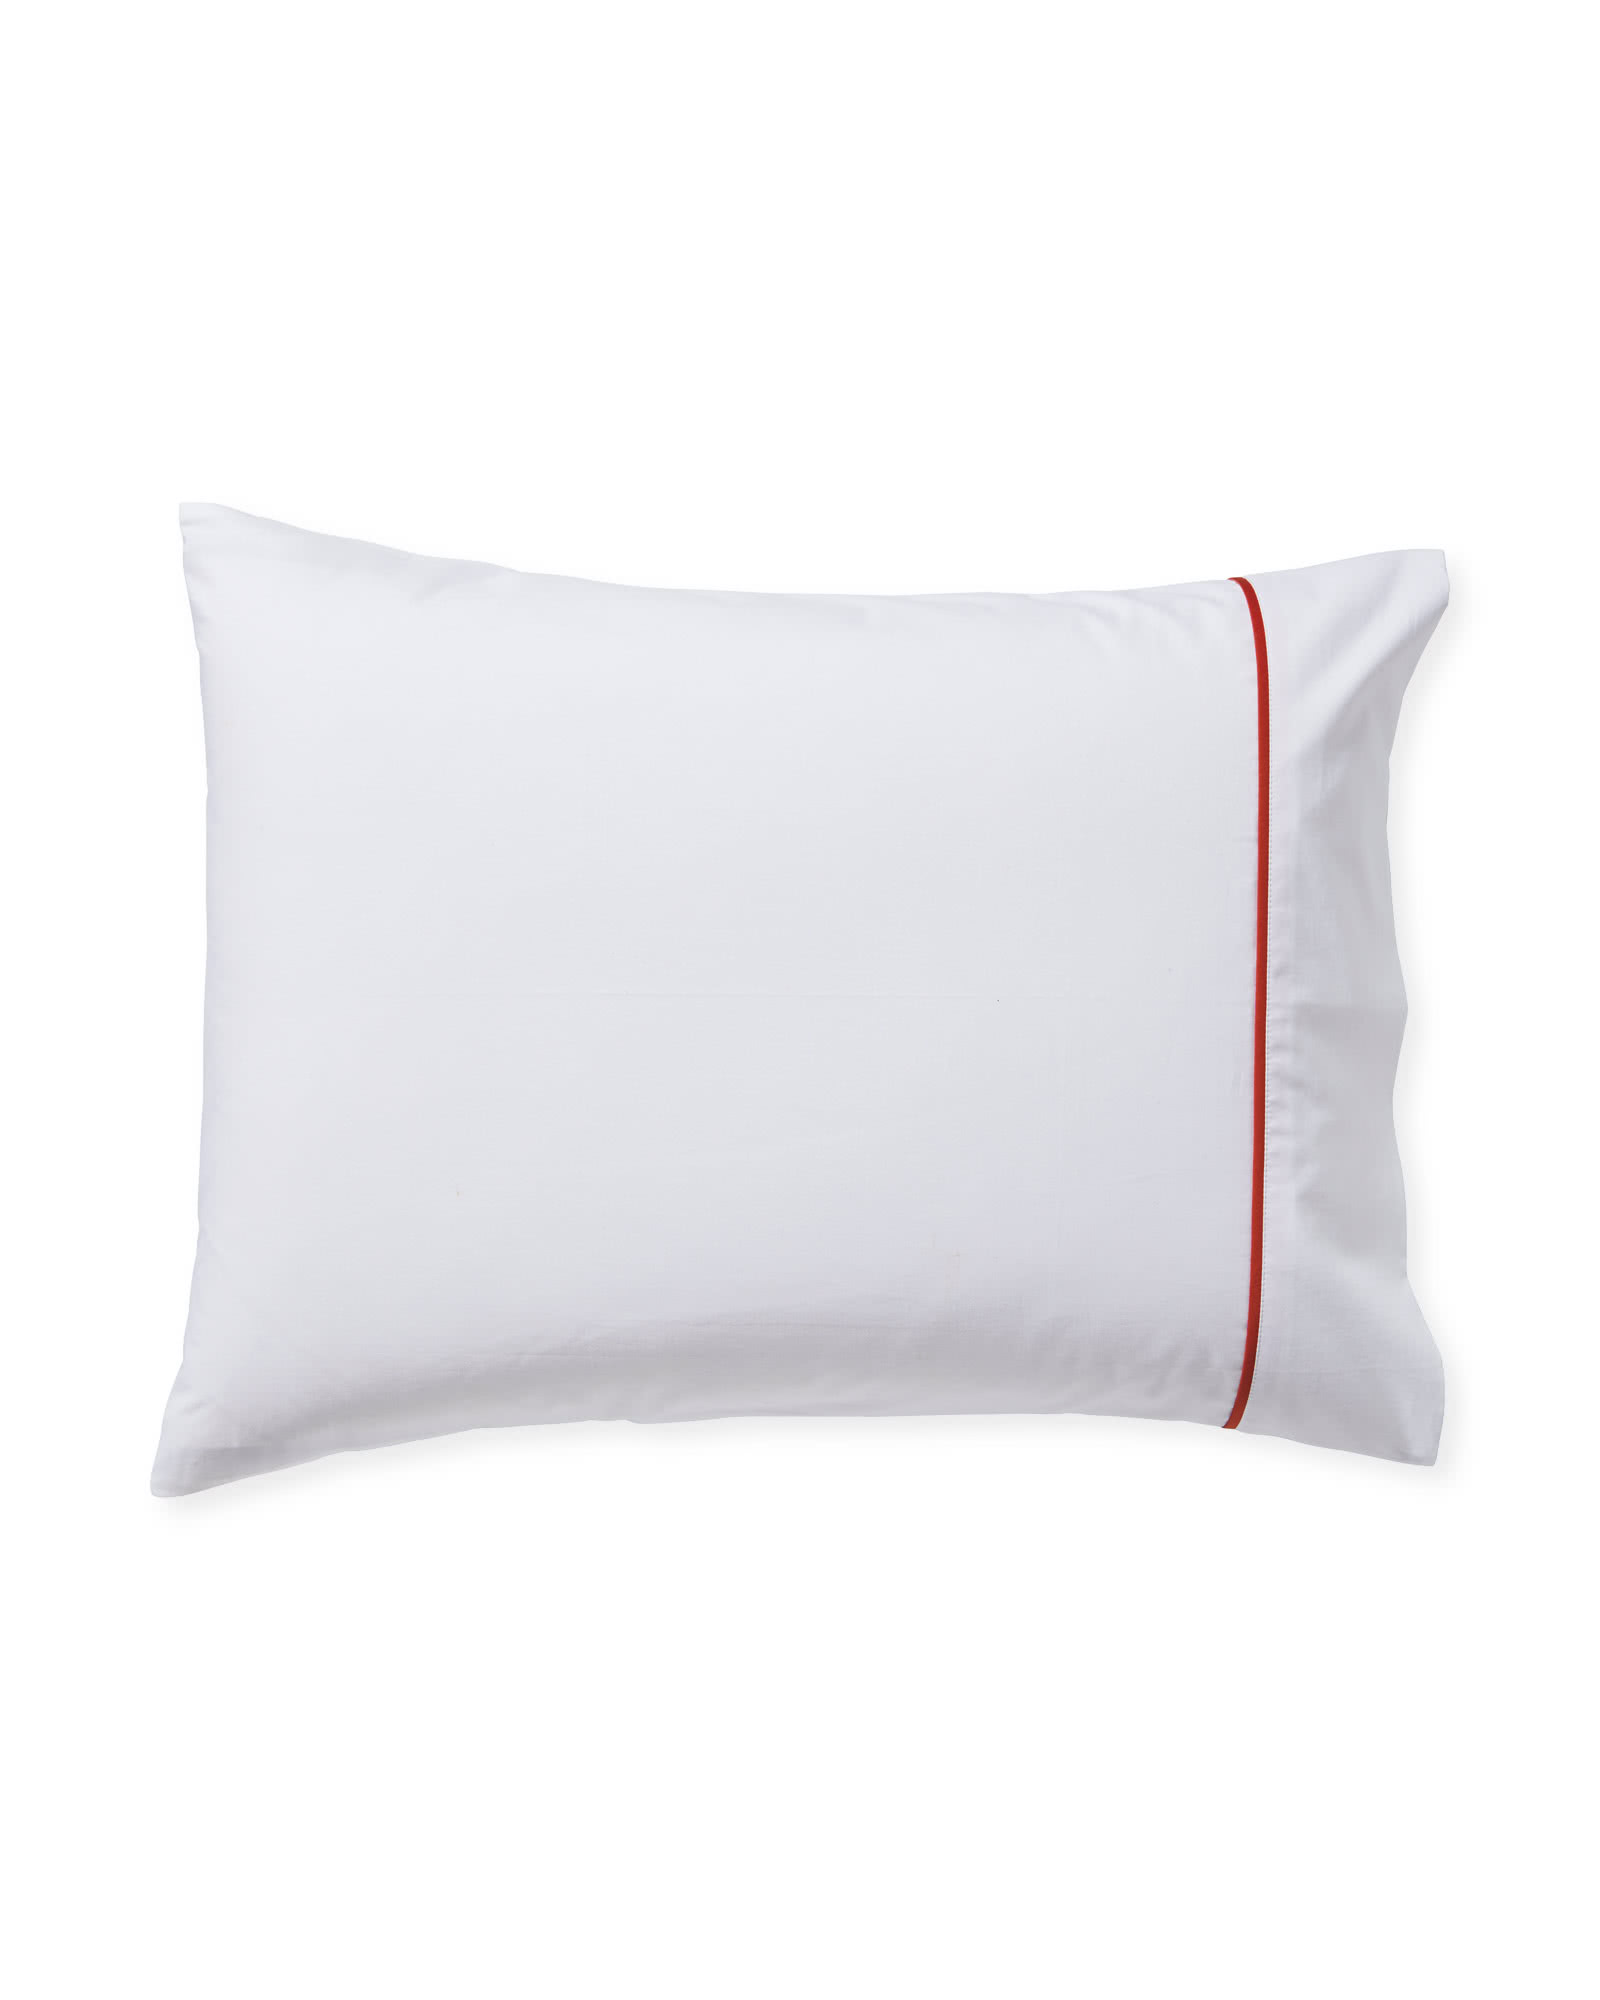 Beach Club Pillowcases (Extra Set of 2), Papaya